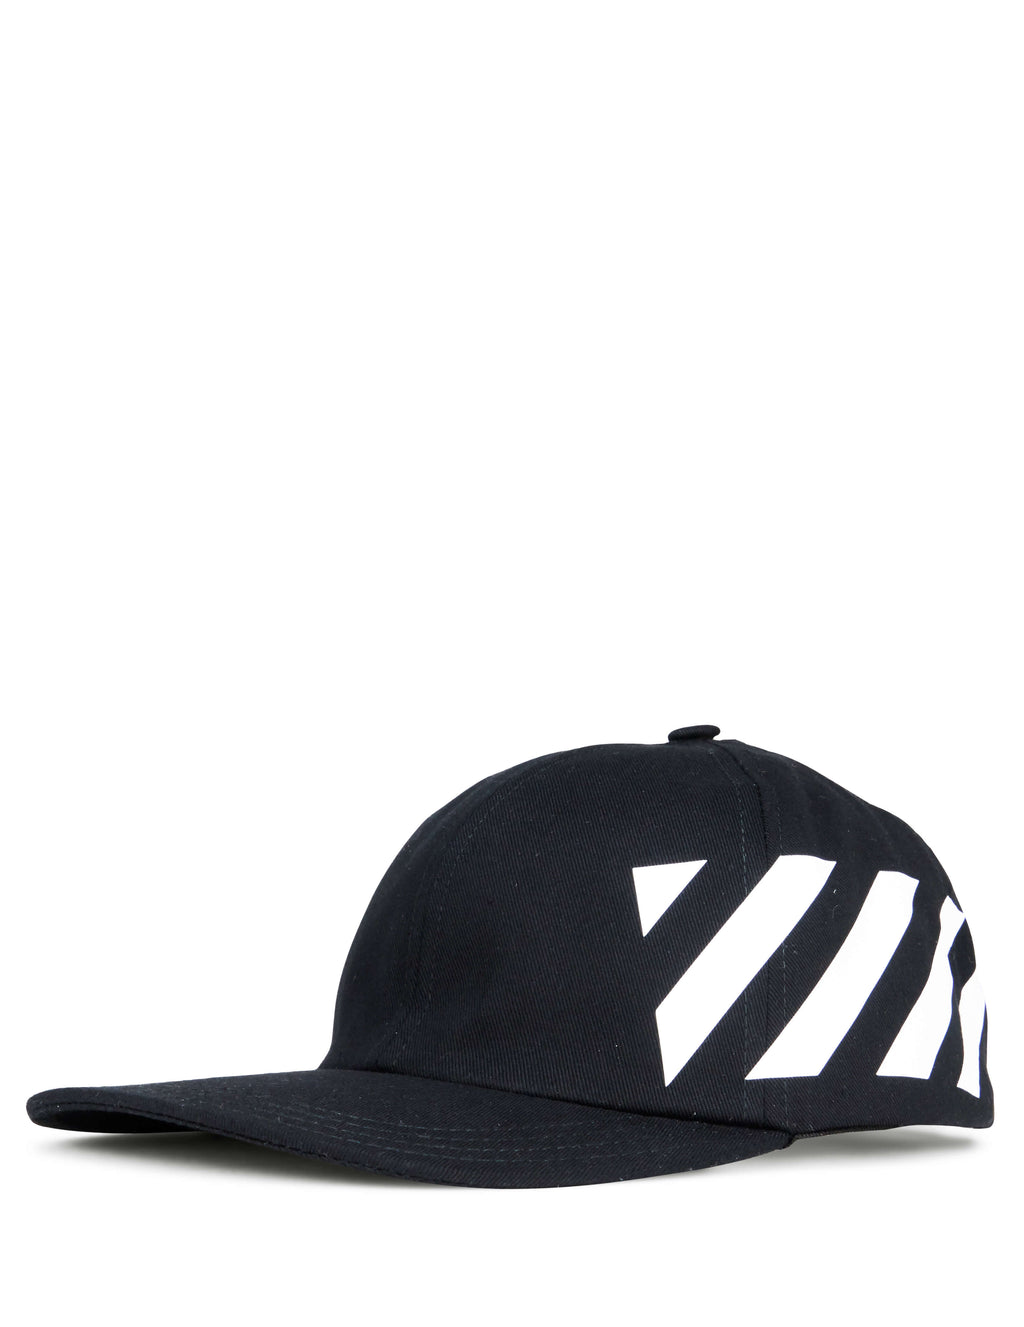 Off-White Men's Giulio Fashion Black Diag Cap OMLB008R194000321001